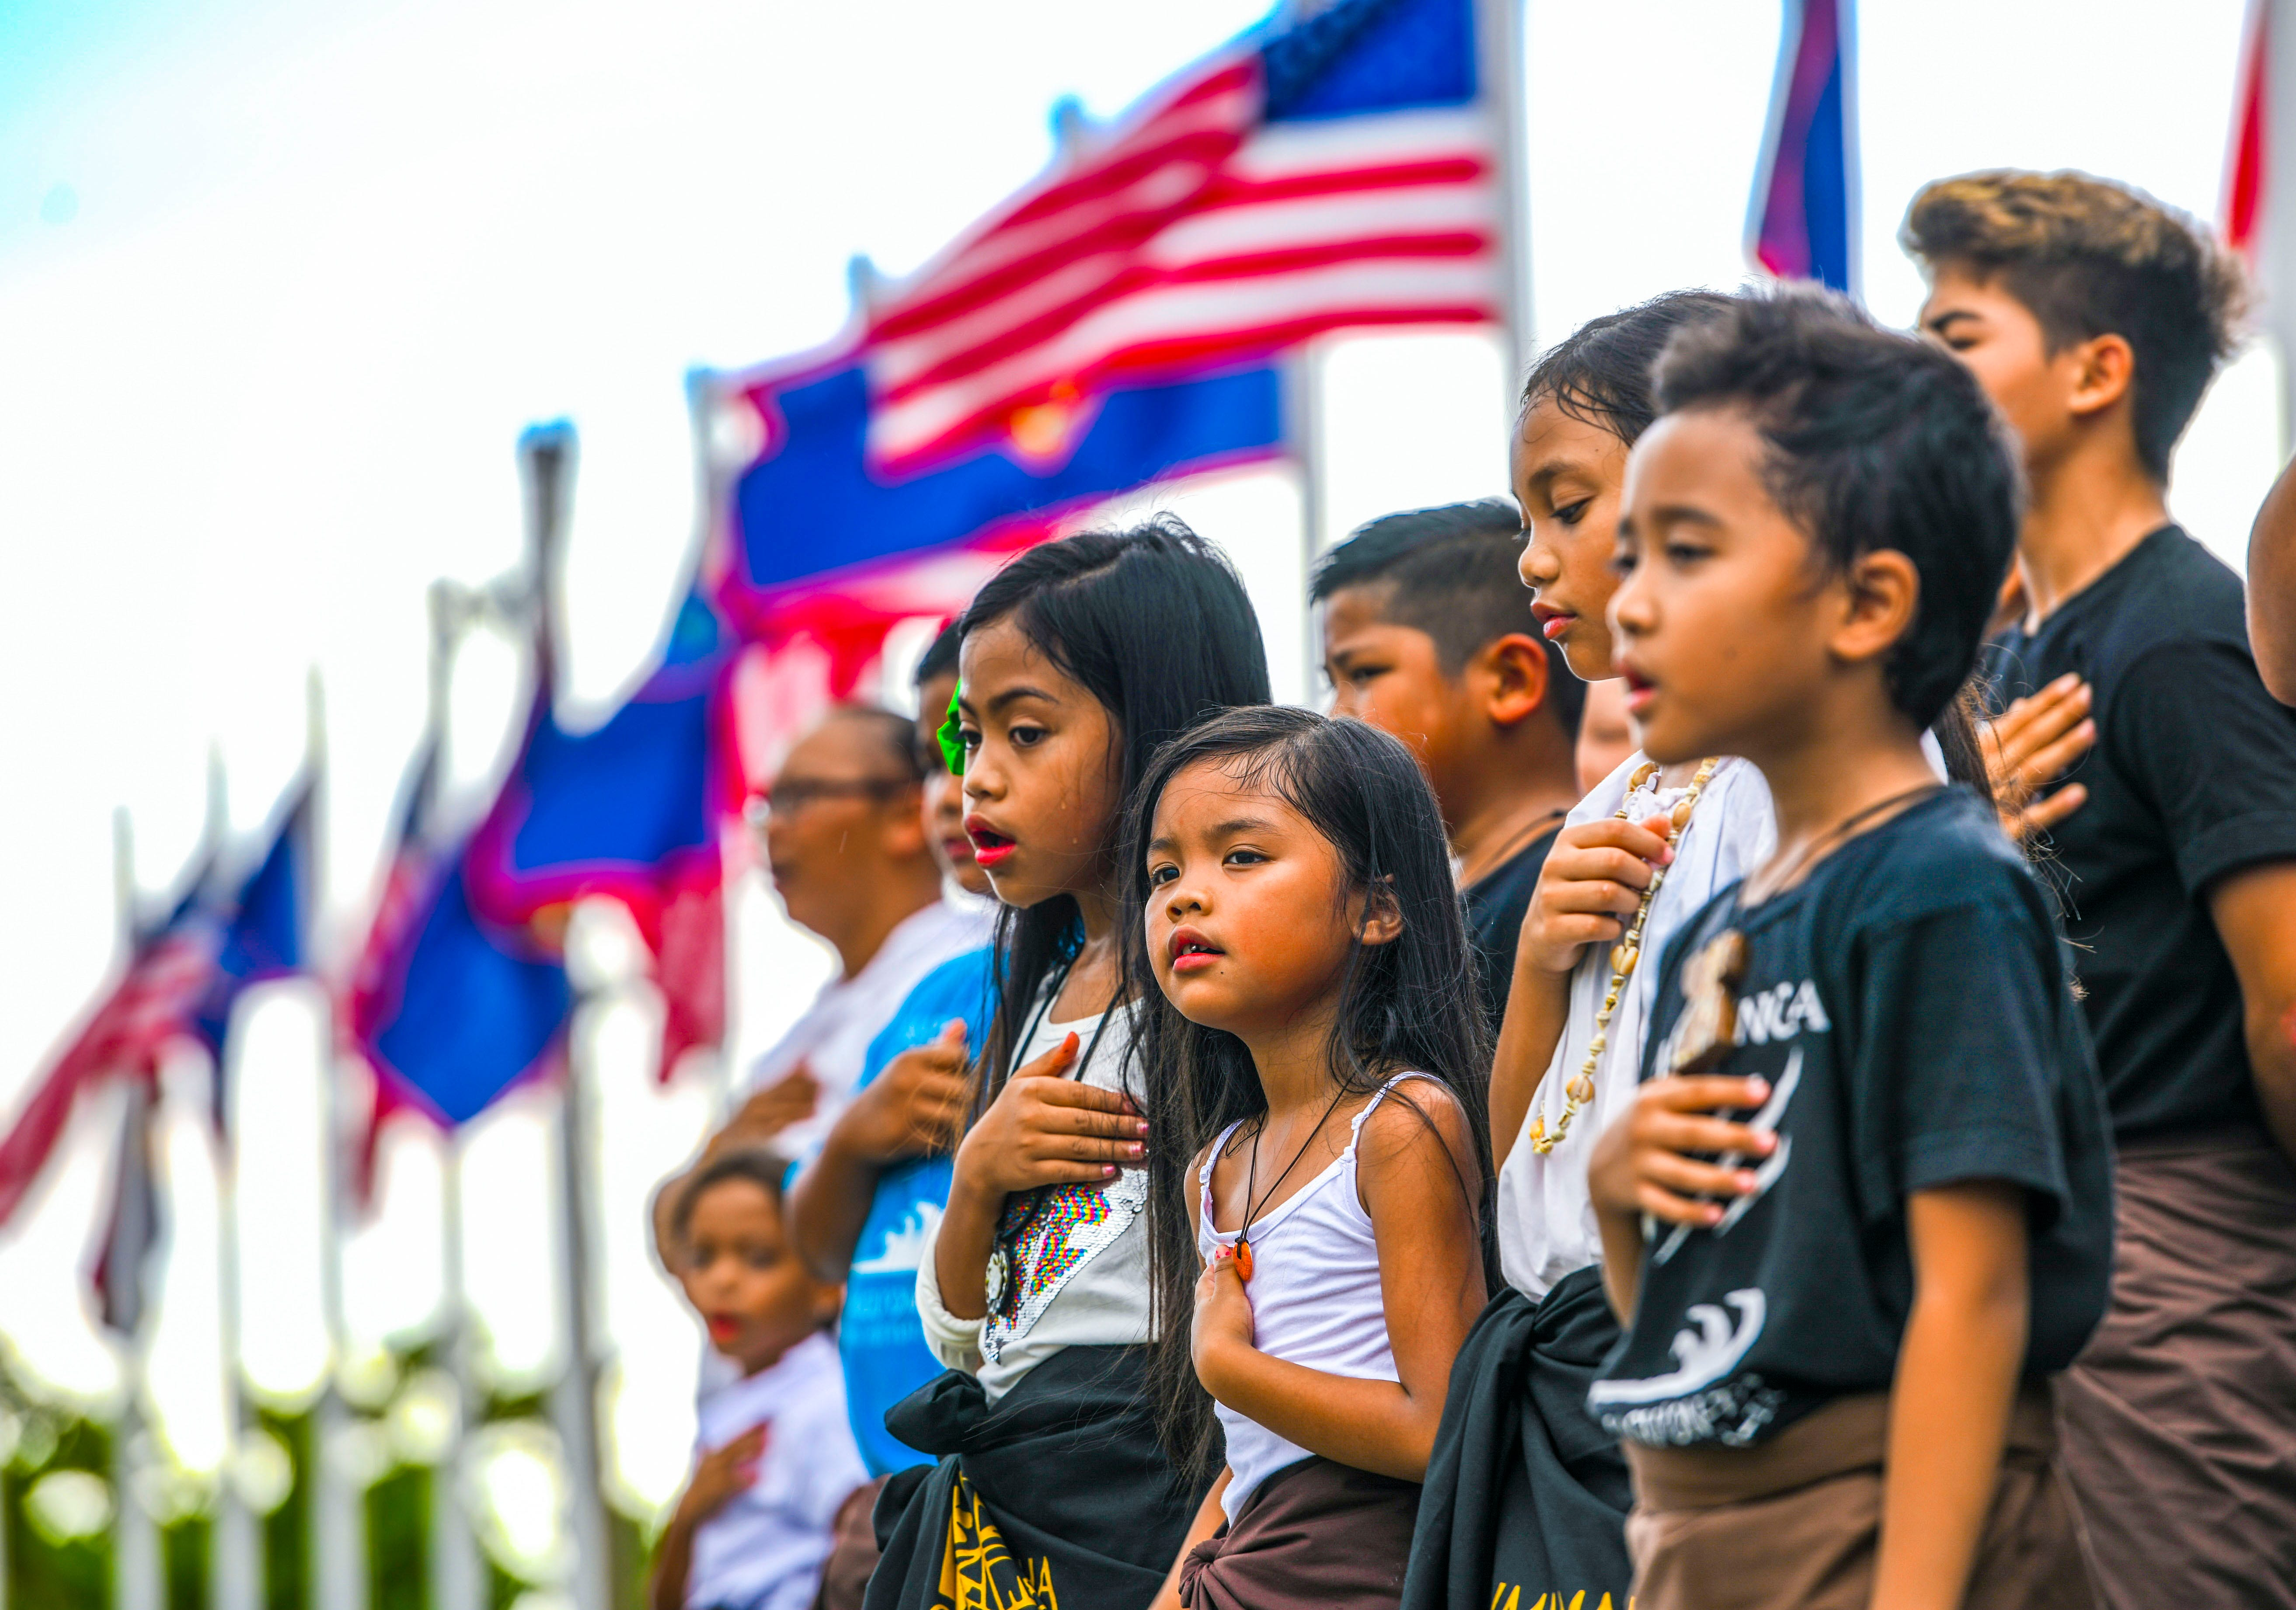 The Inifresi, or Guam Pledge, is recited during the start of the Na'lå'la': Songs of Freedom, Vol. 3 concert held at Adelup on Thursday, July 4, 2019. While Independence Day is normally celebrated nationwide, local group Independent Guåhan, has hosted the event for the past three years, to educate the island community about the importance of Guam's decolonization.